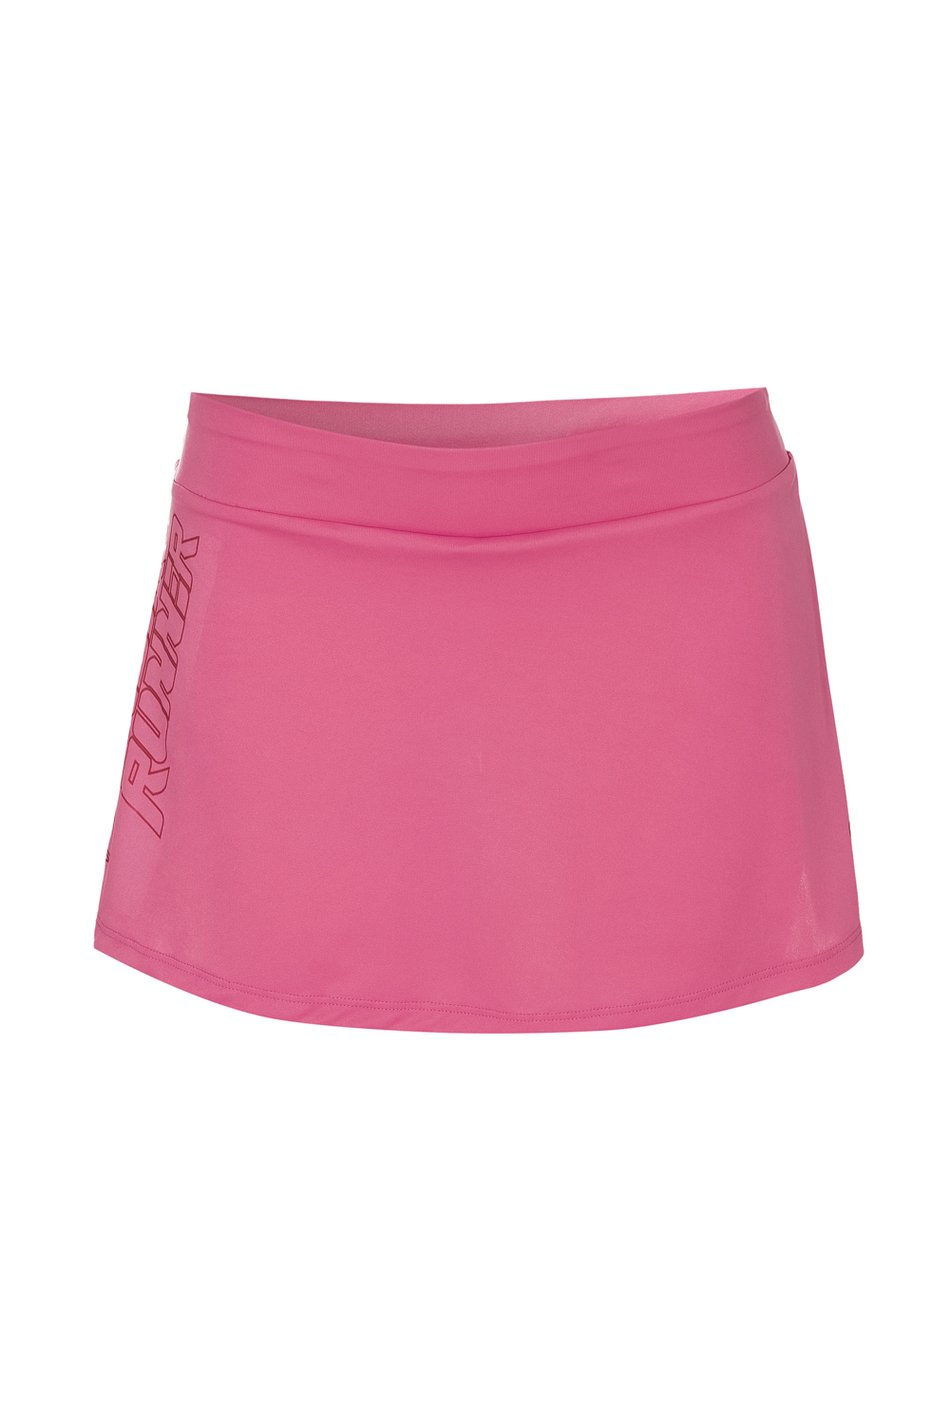 Saia Shorts W Run Rosa Fem